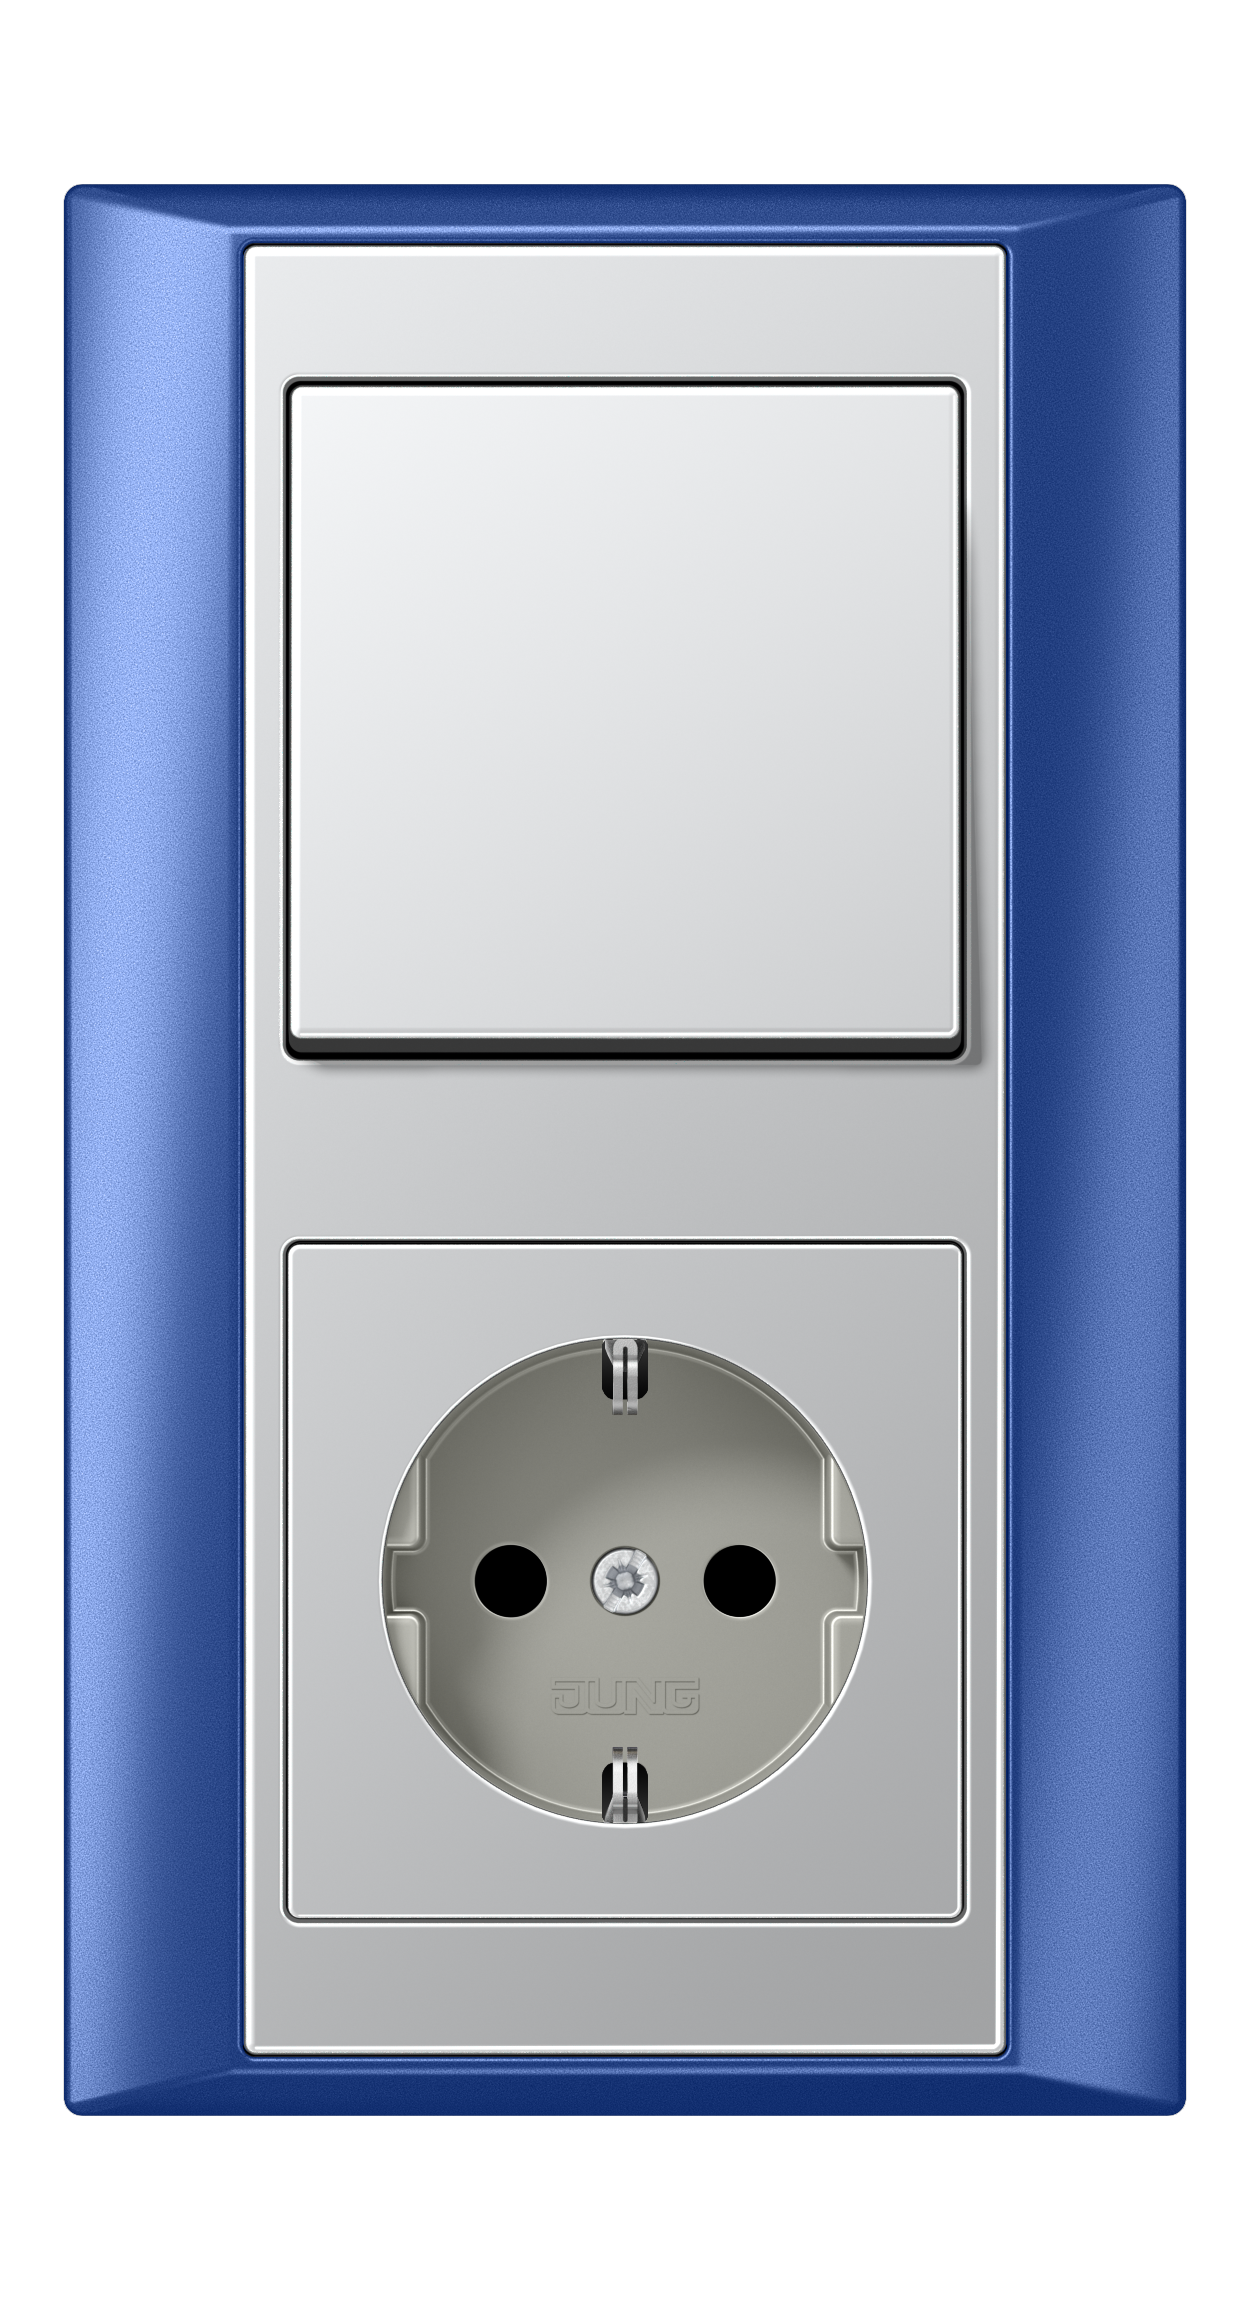 JUNG_Aplus_blue_aluminium_switch-socket